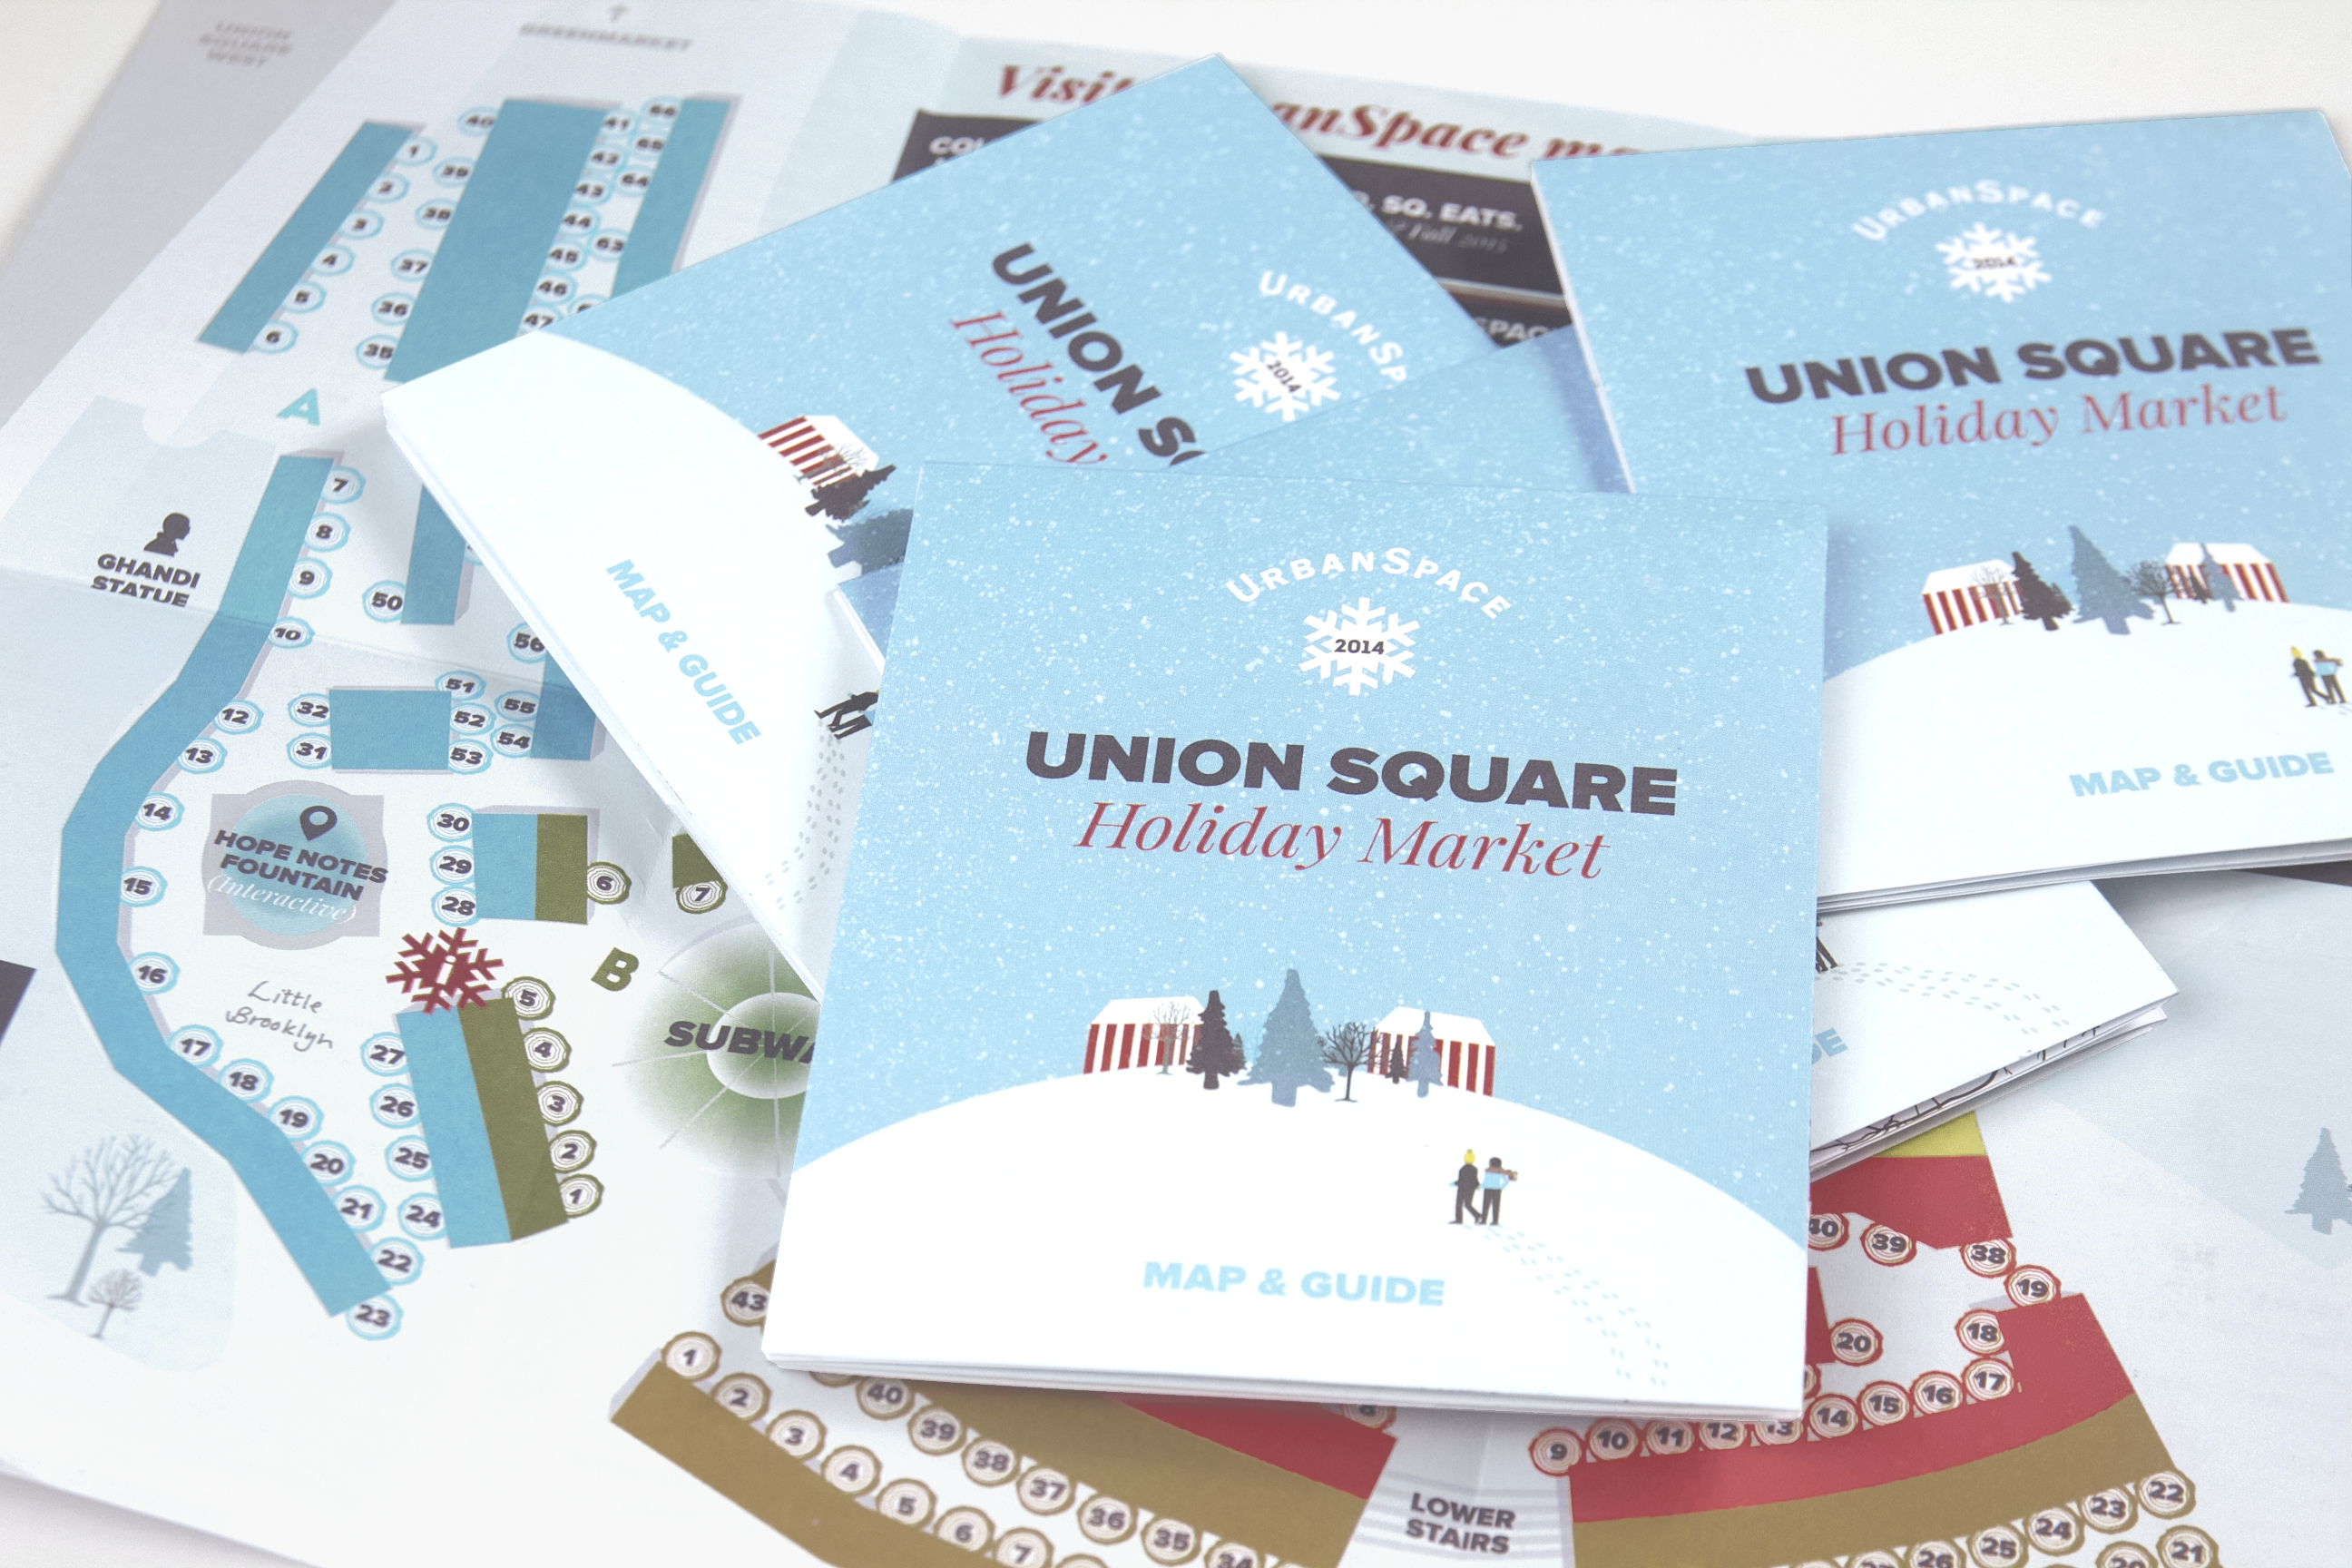 winter market union square editorial design by Tiny Rebels Graphic Design for Urban Space New York